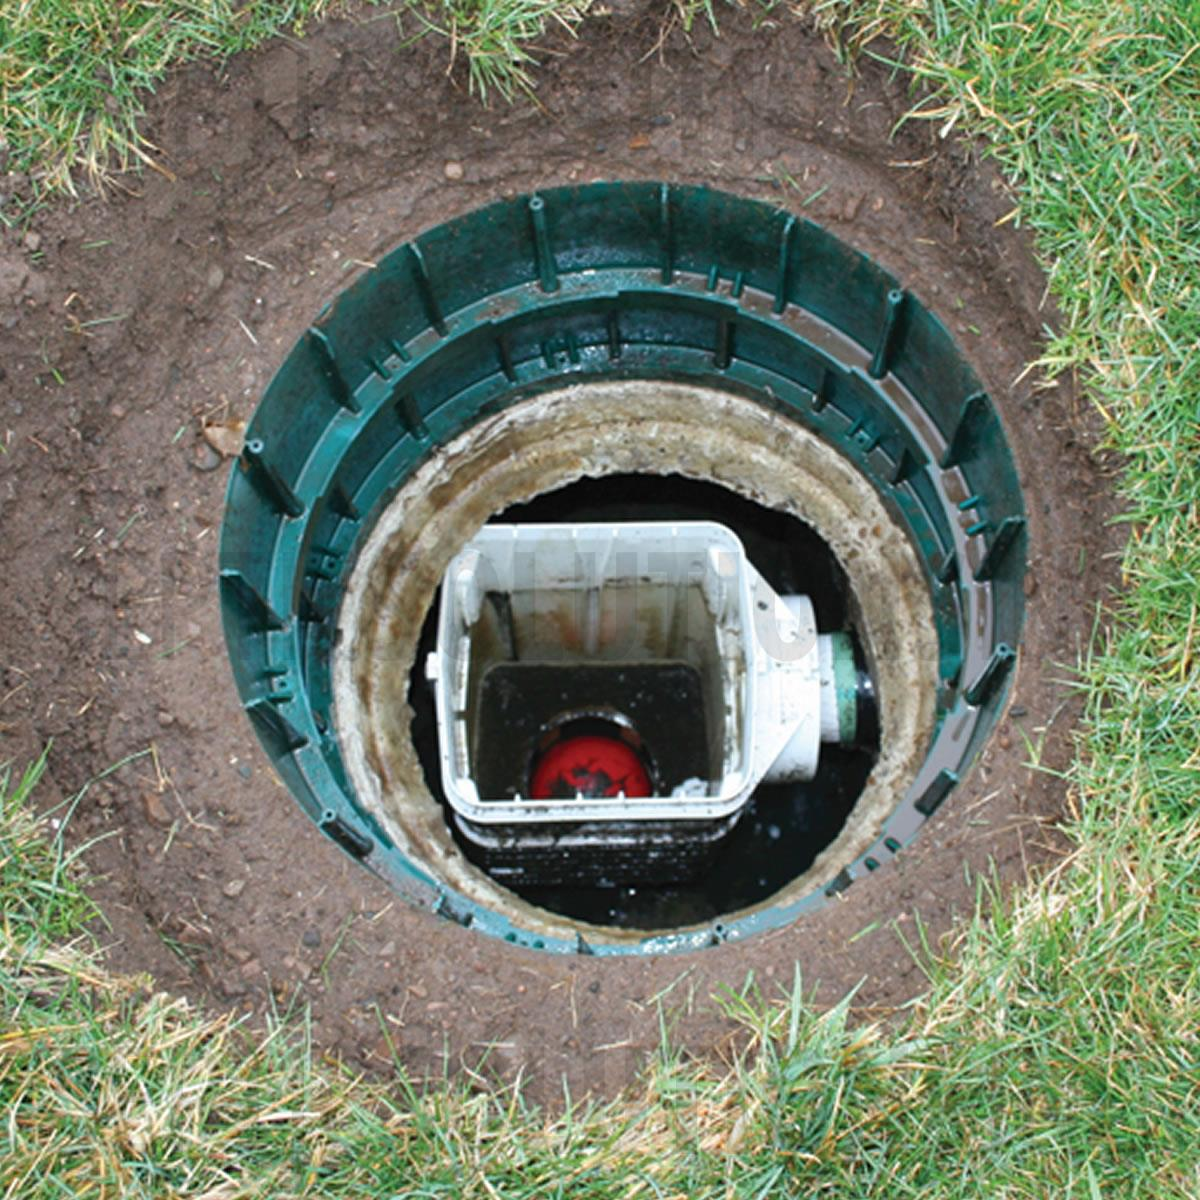 how to turn off septic tank alarm